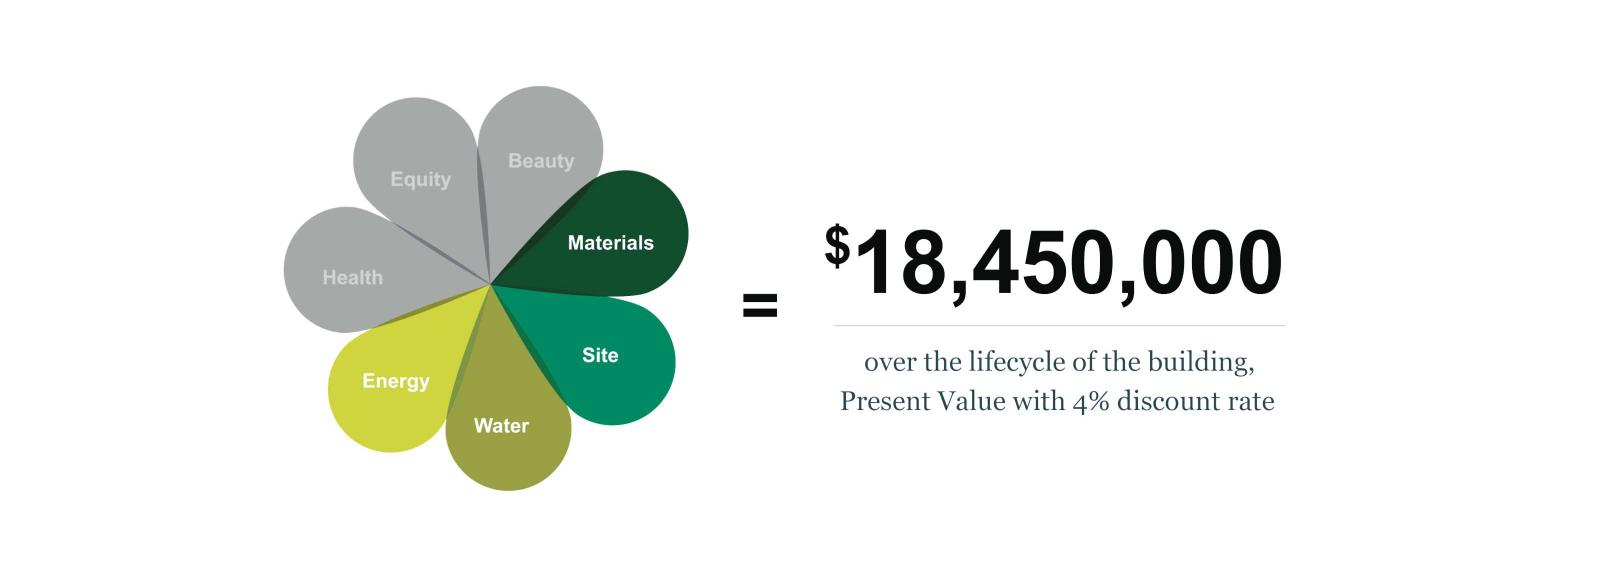 Infographic showing the total benefits of the Bullitt Center's green building innovation, represented by petals of a flower.